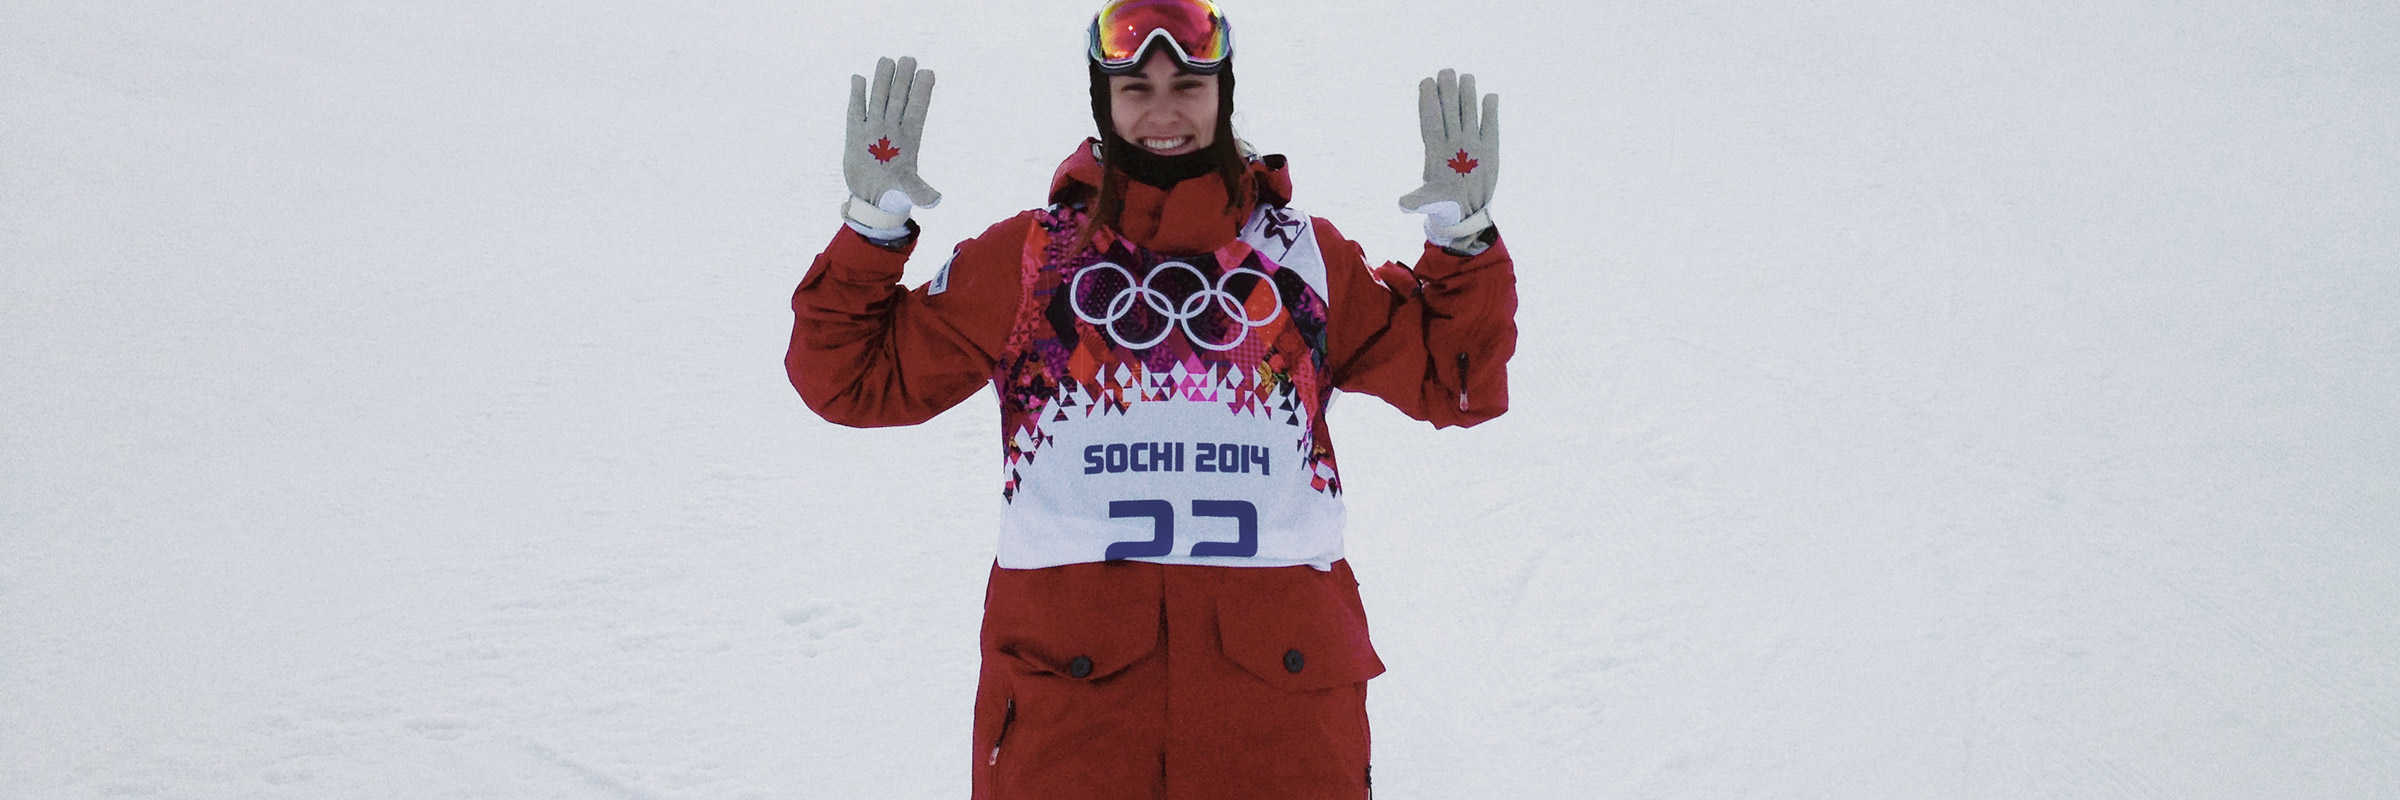 Forever an Olympian: Keeping The Sochi Halfpipe Dream Alive With Keltie Hansen